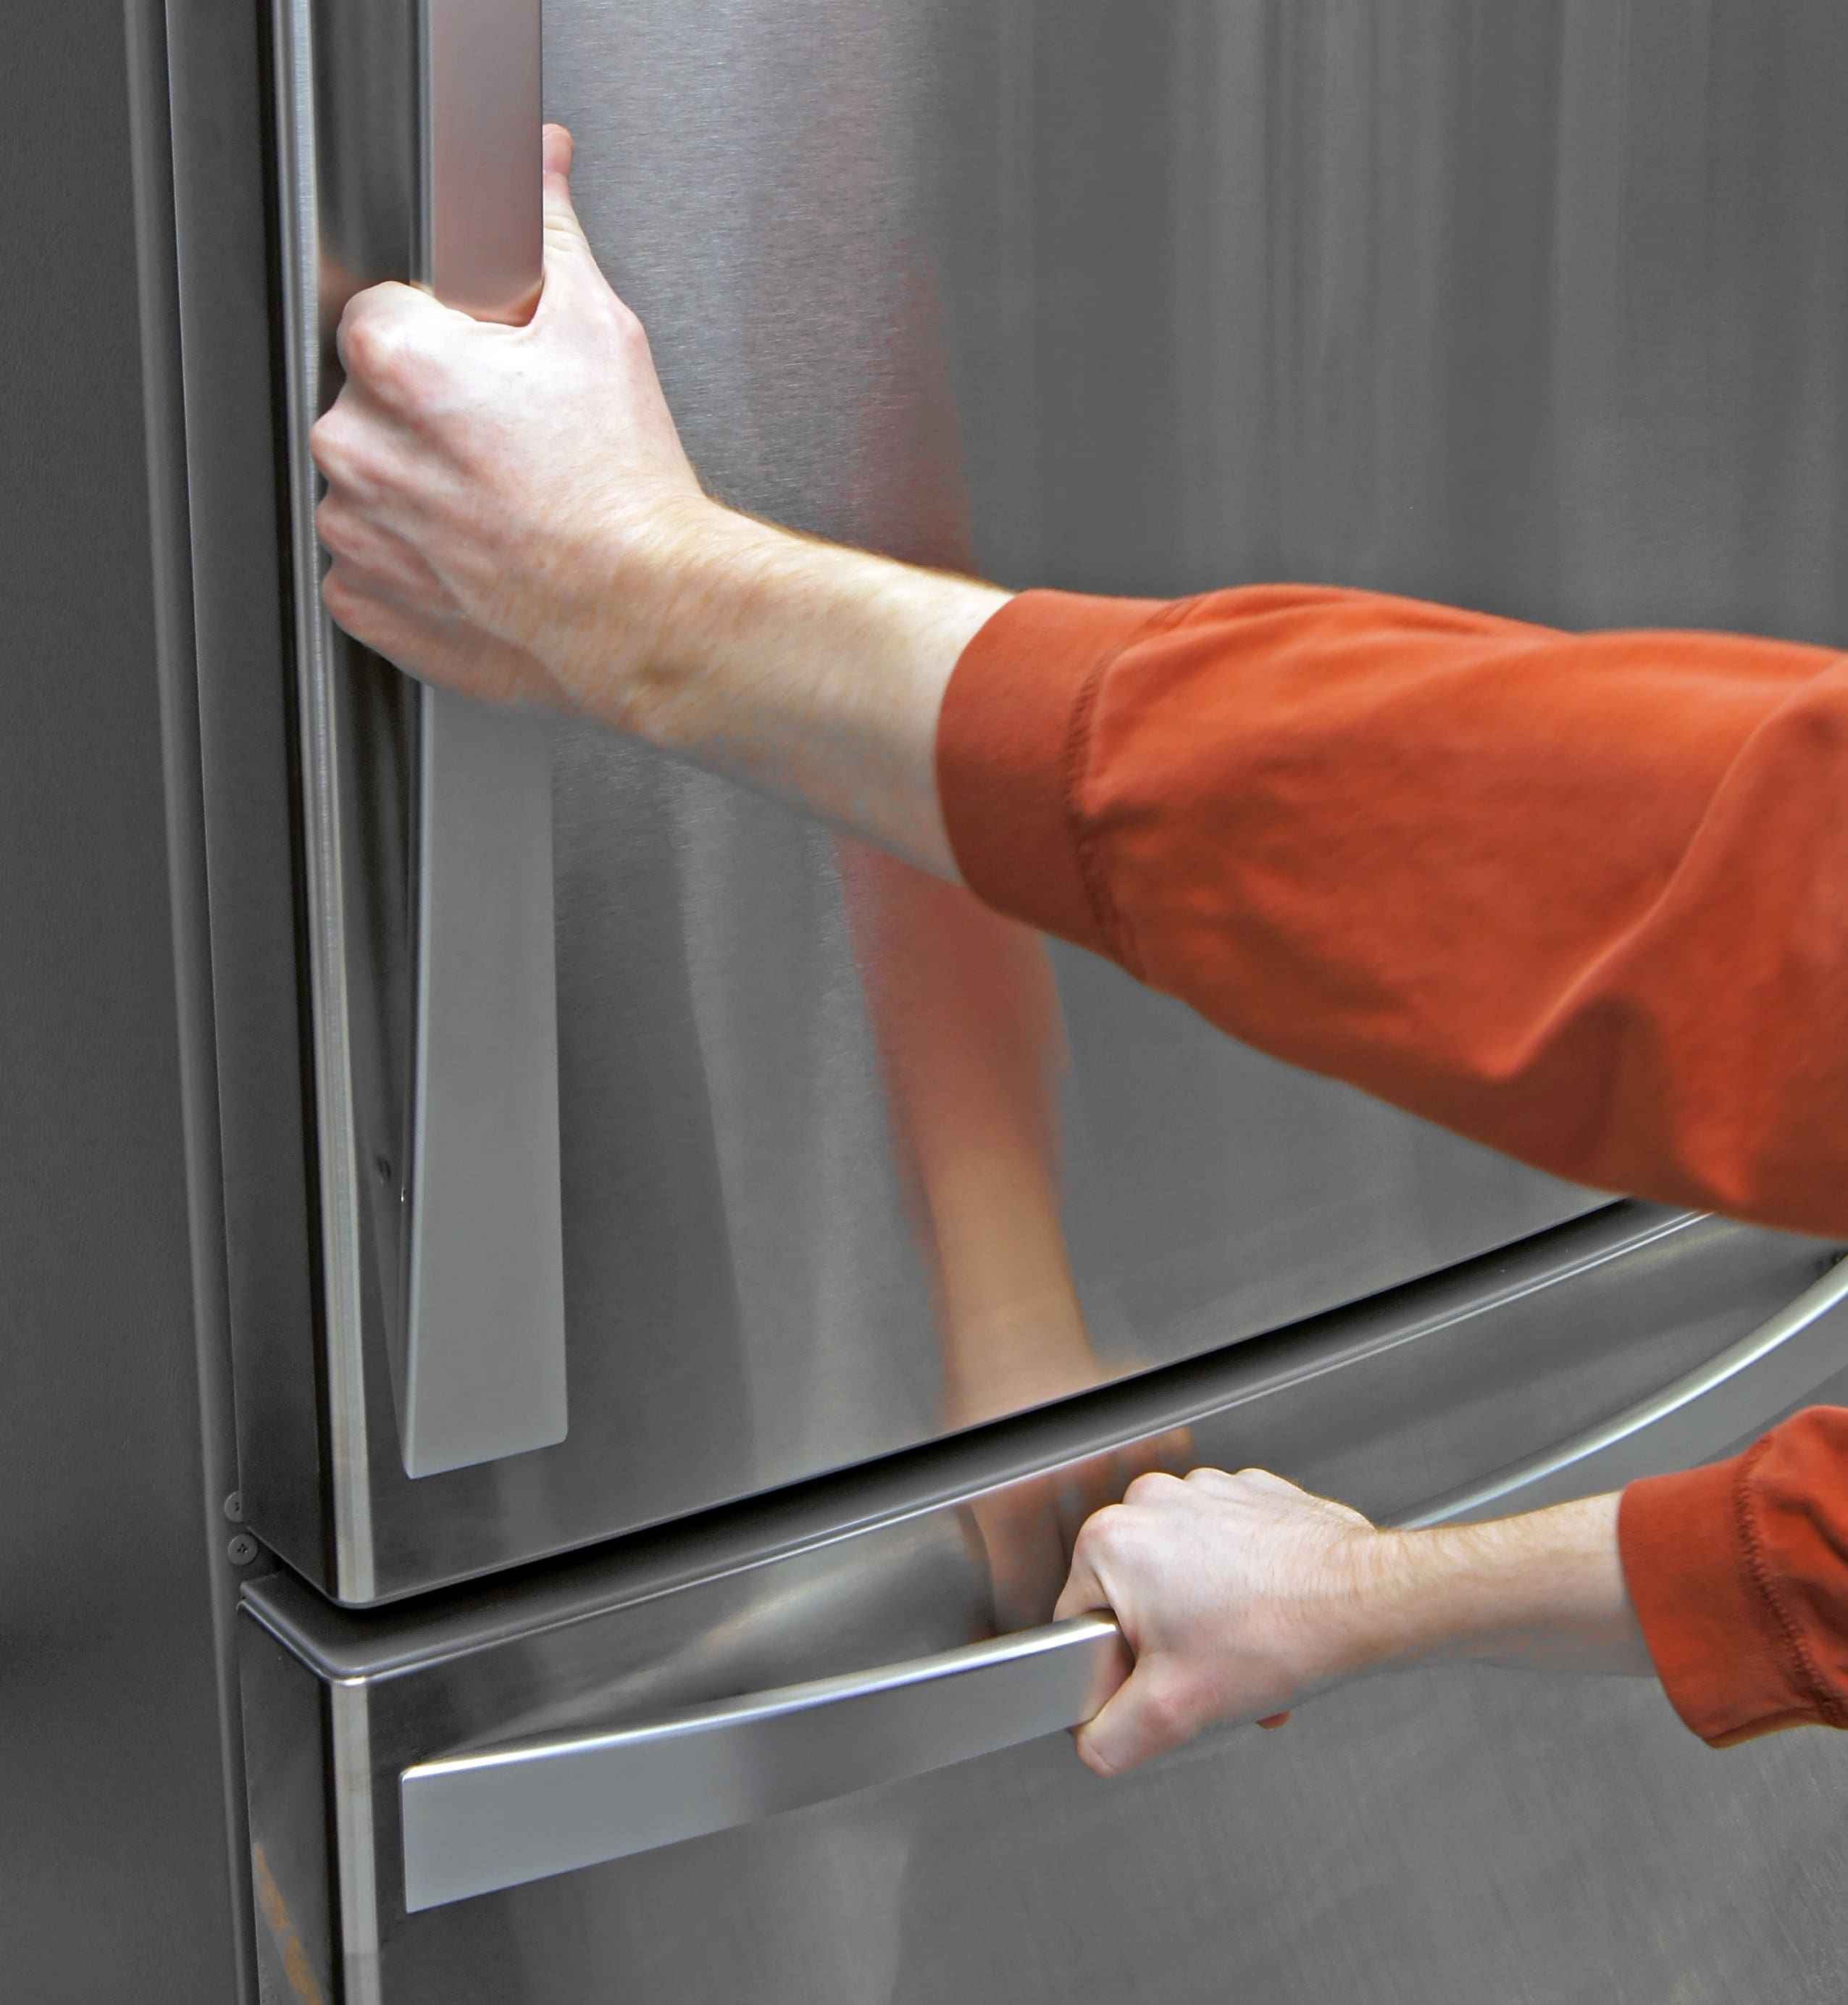 The Kenmore Elite 79043's long, tapering handles are comfortable to grip.